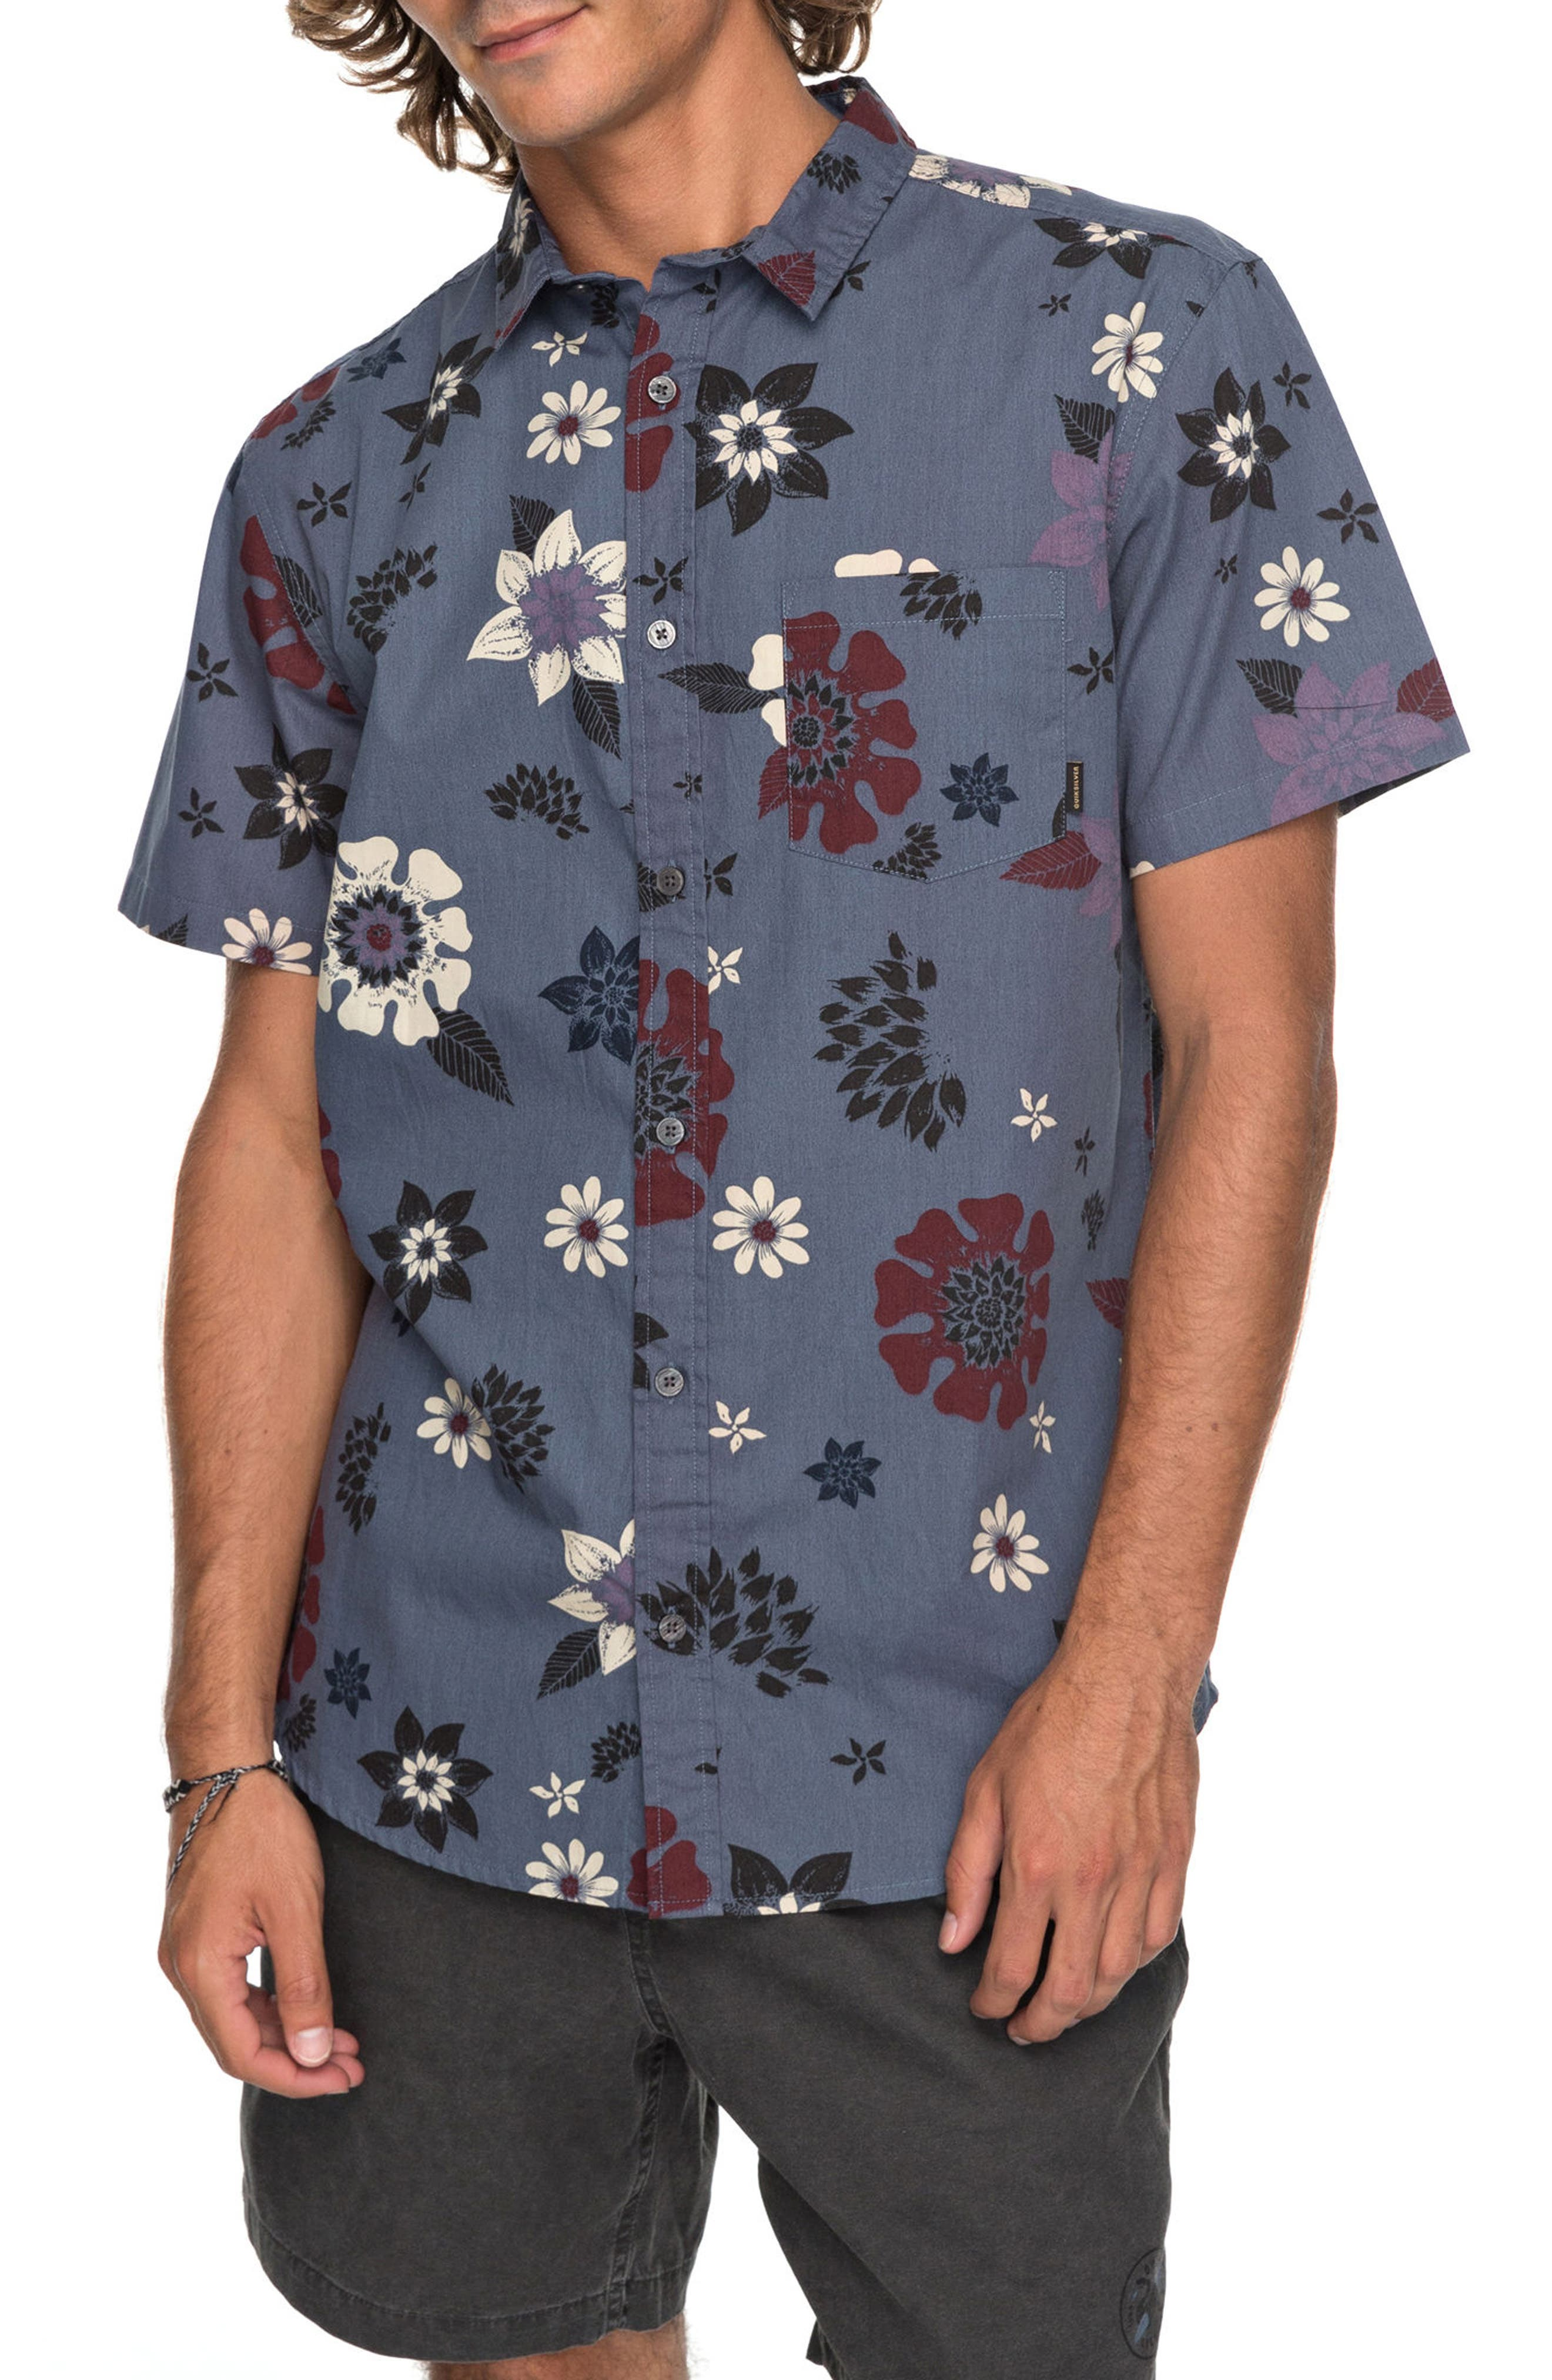 Sunset Floral Woven Shirt,                             Main thumbnail 1, color,                             020